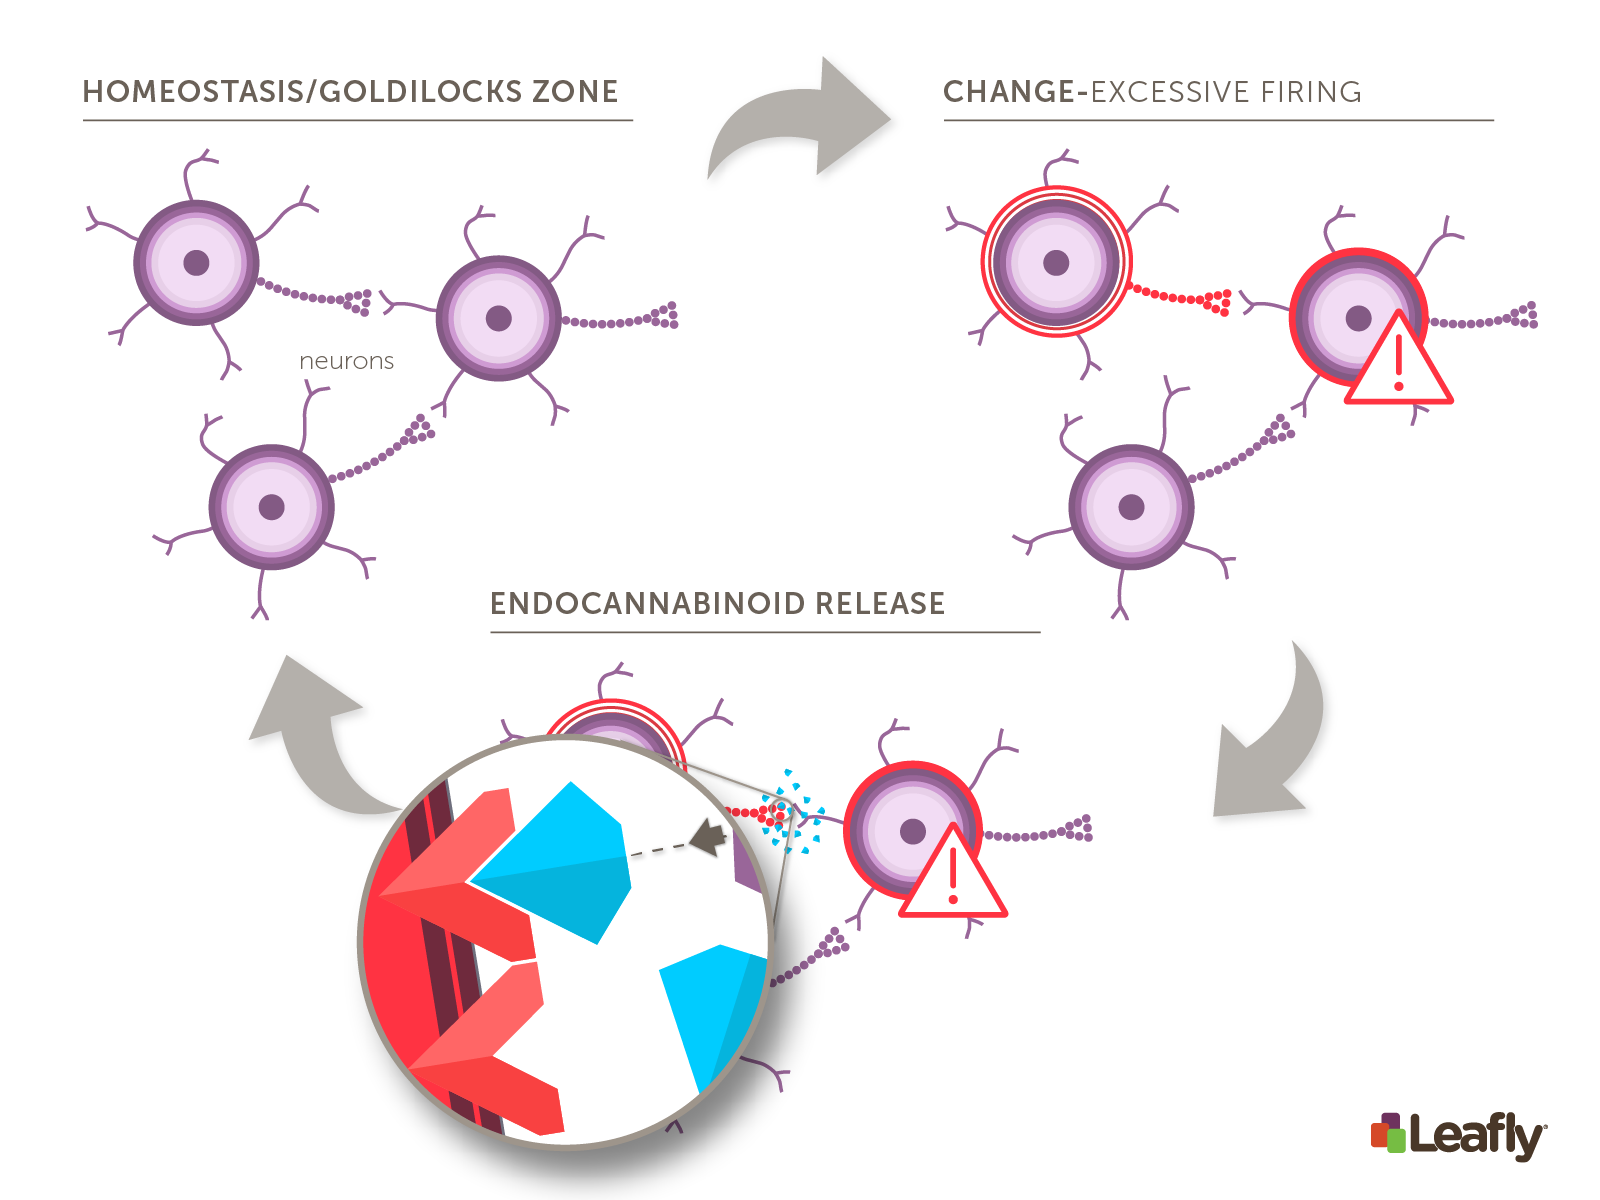 endocannabinoid system regulation of brain cell firing